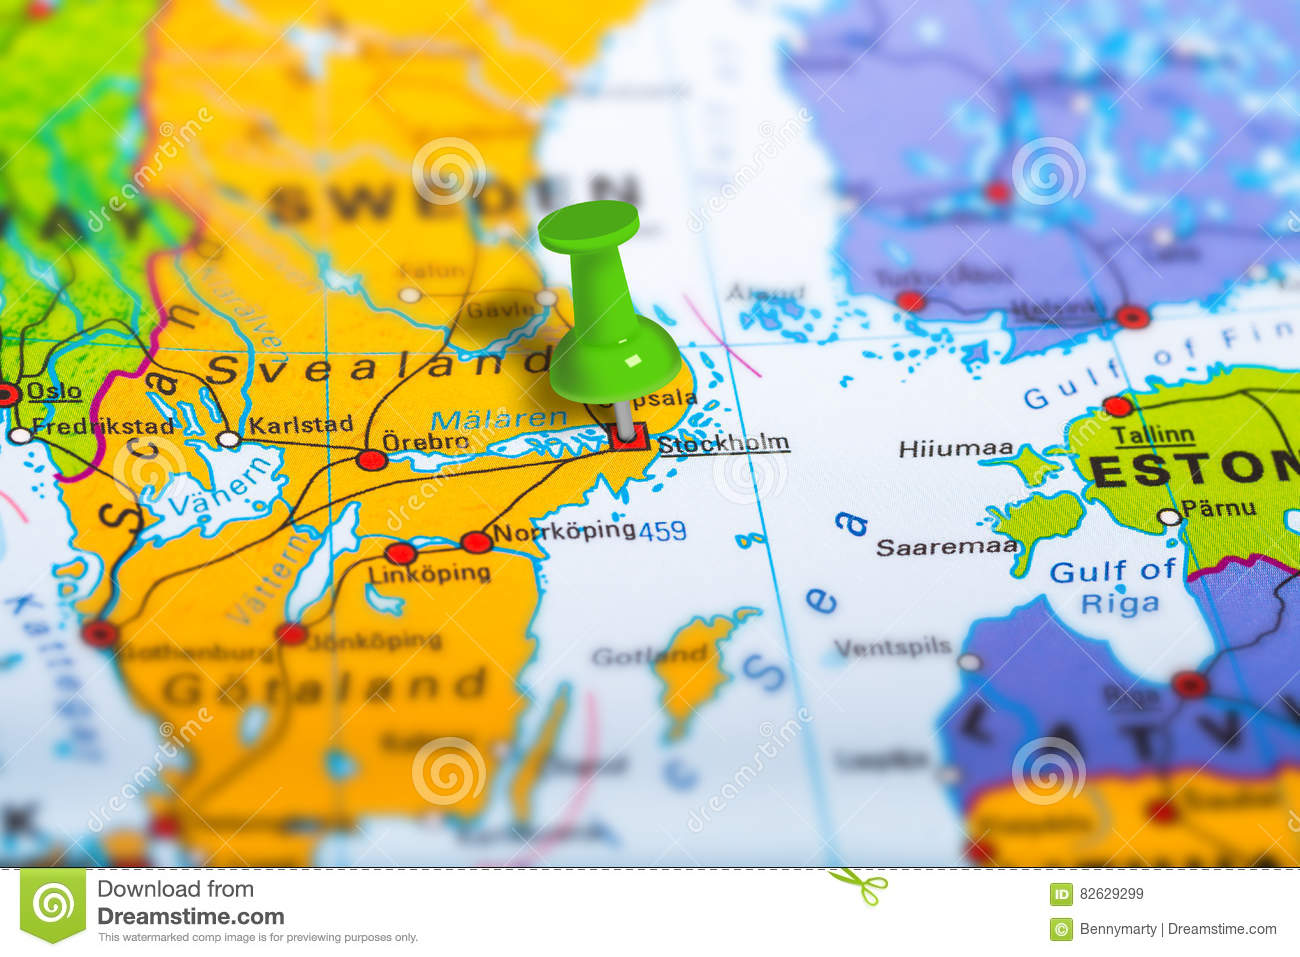 Stockholm Sweden map stock image Image of marking cartography